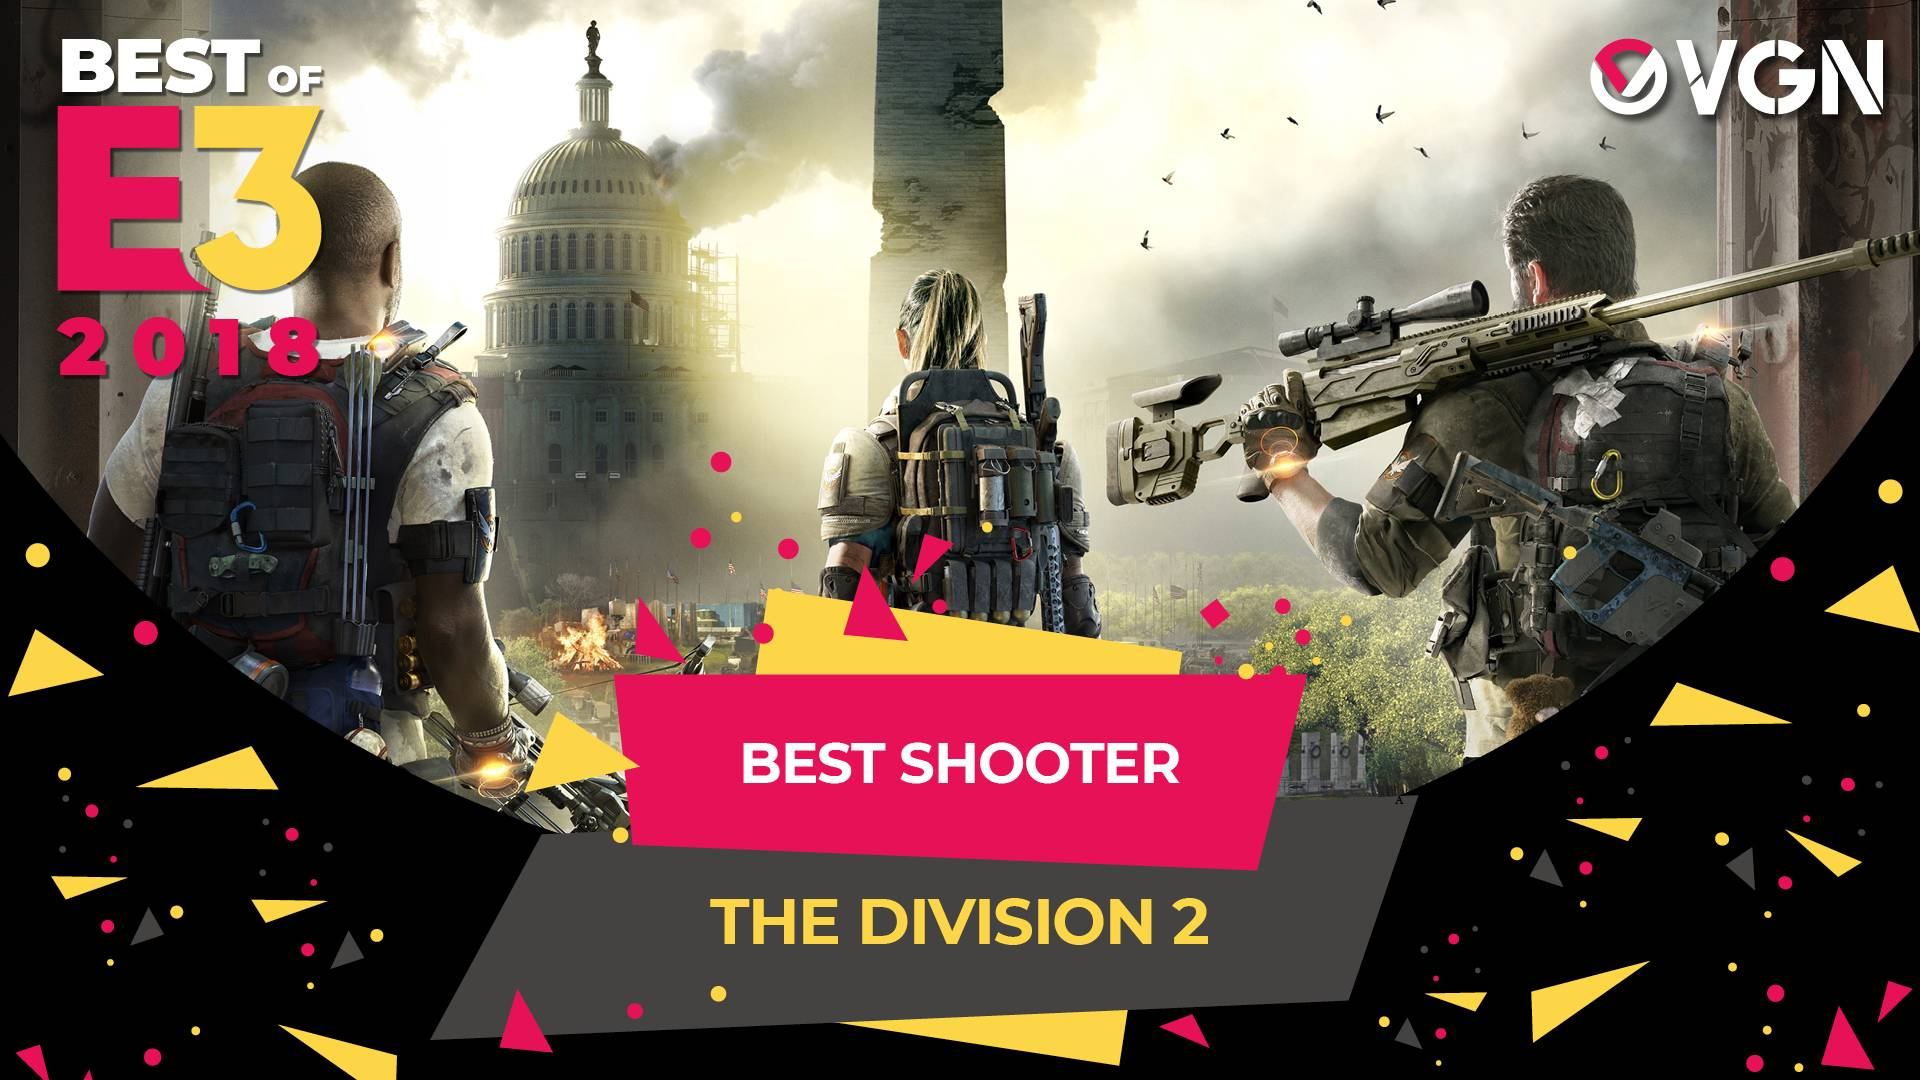 E3 2018 - Best Shooter - The Division 2